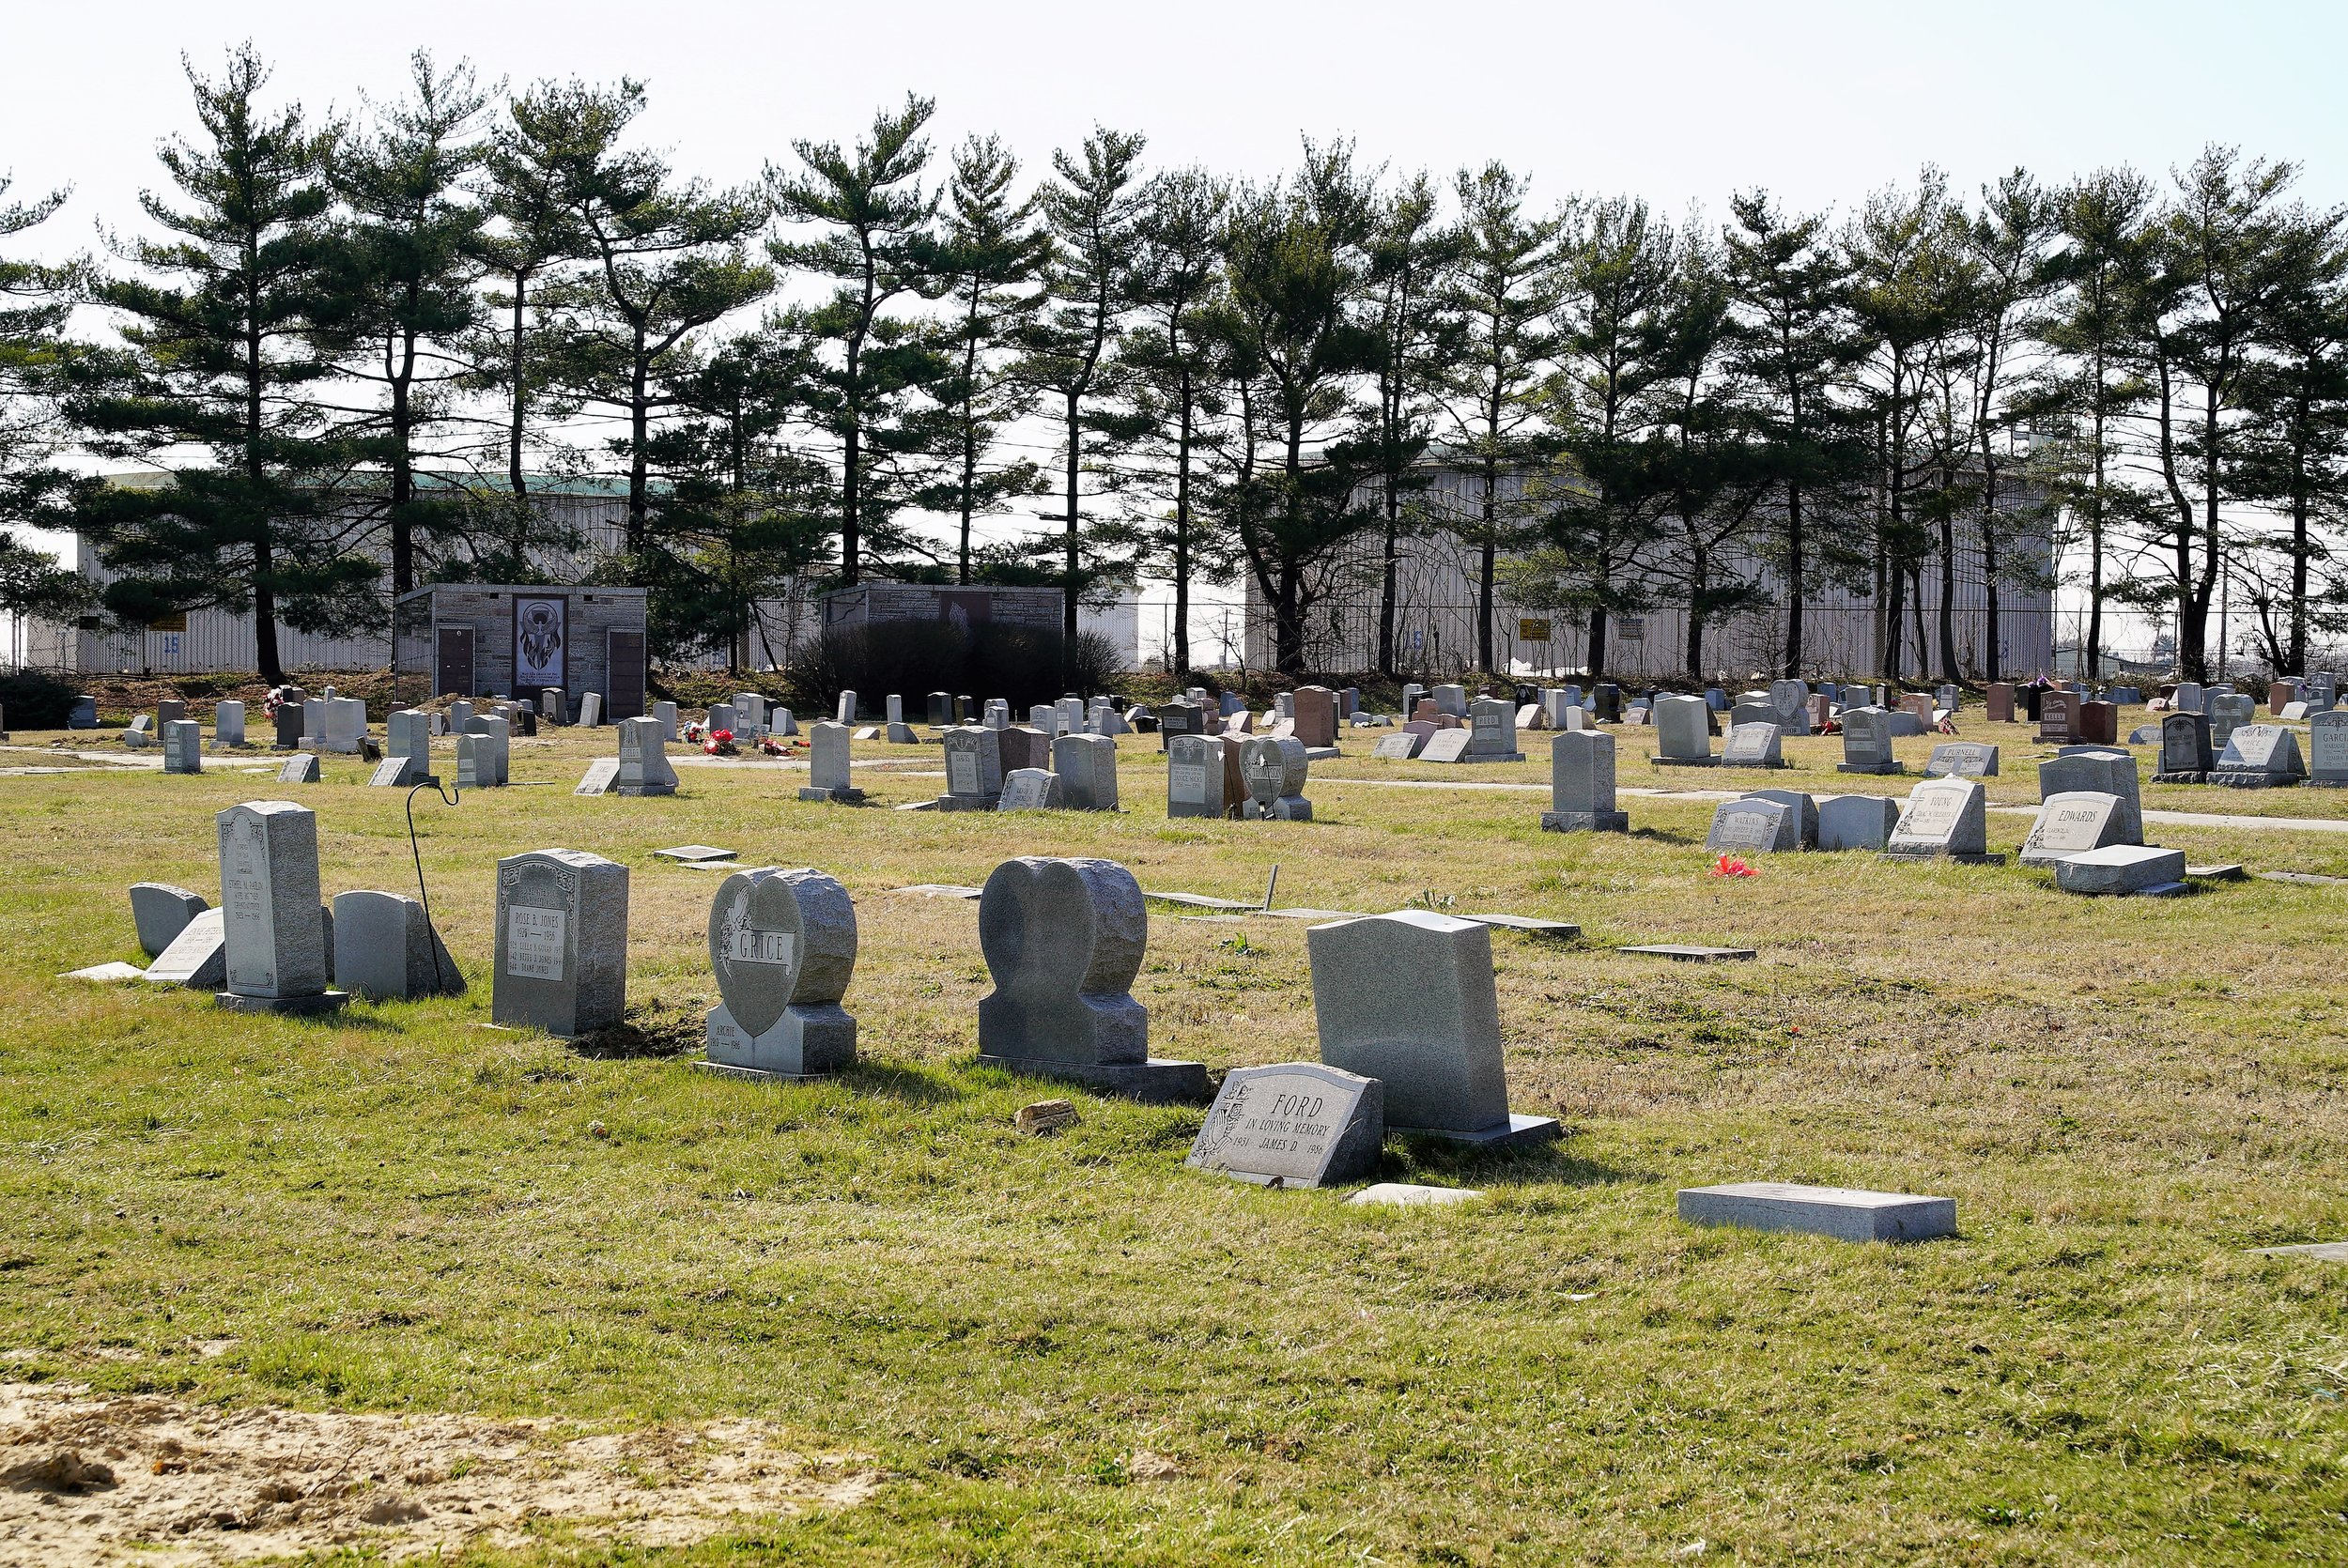 Mount Lawn Cemetery, Sharon Hill, PA. One section backs up to a tank farm.